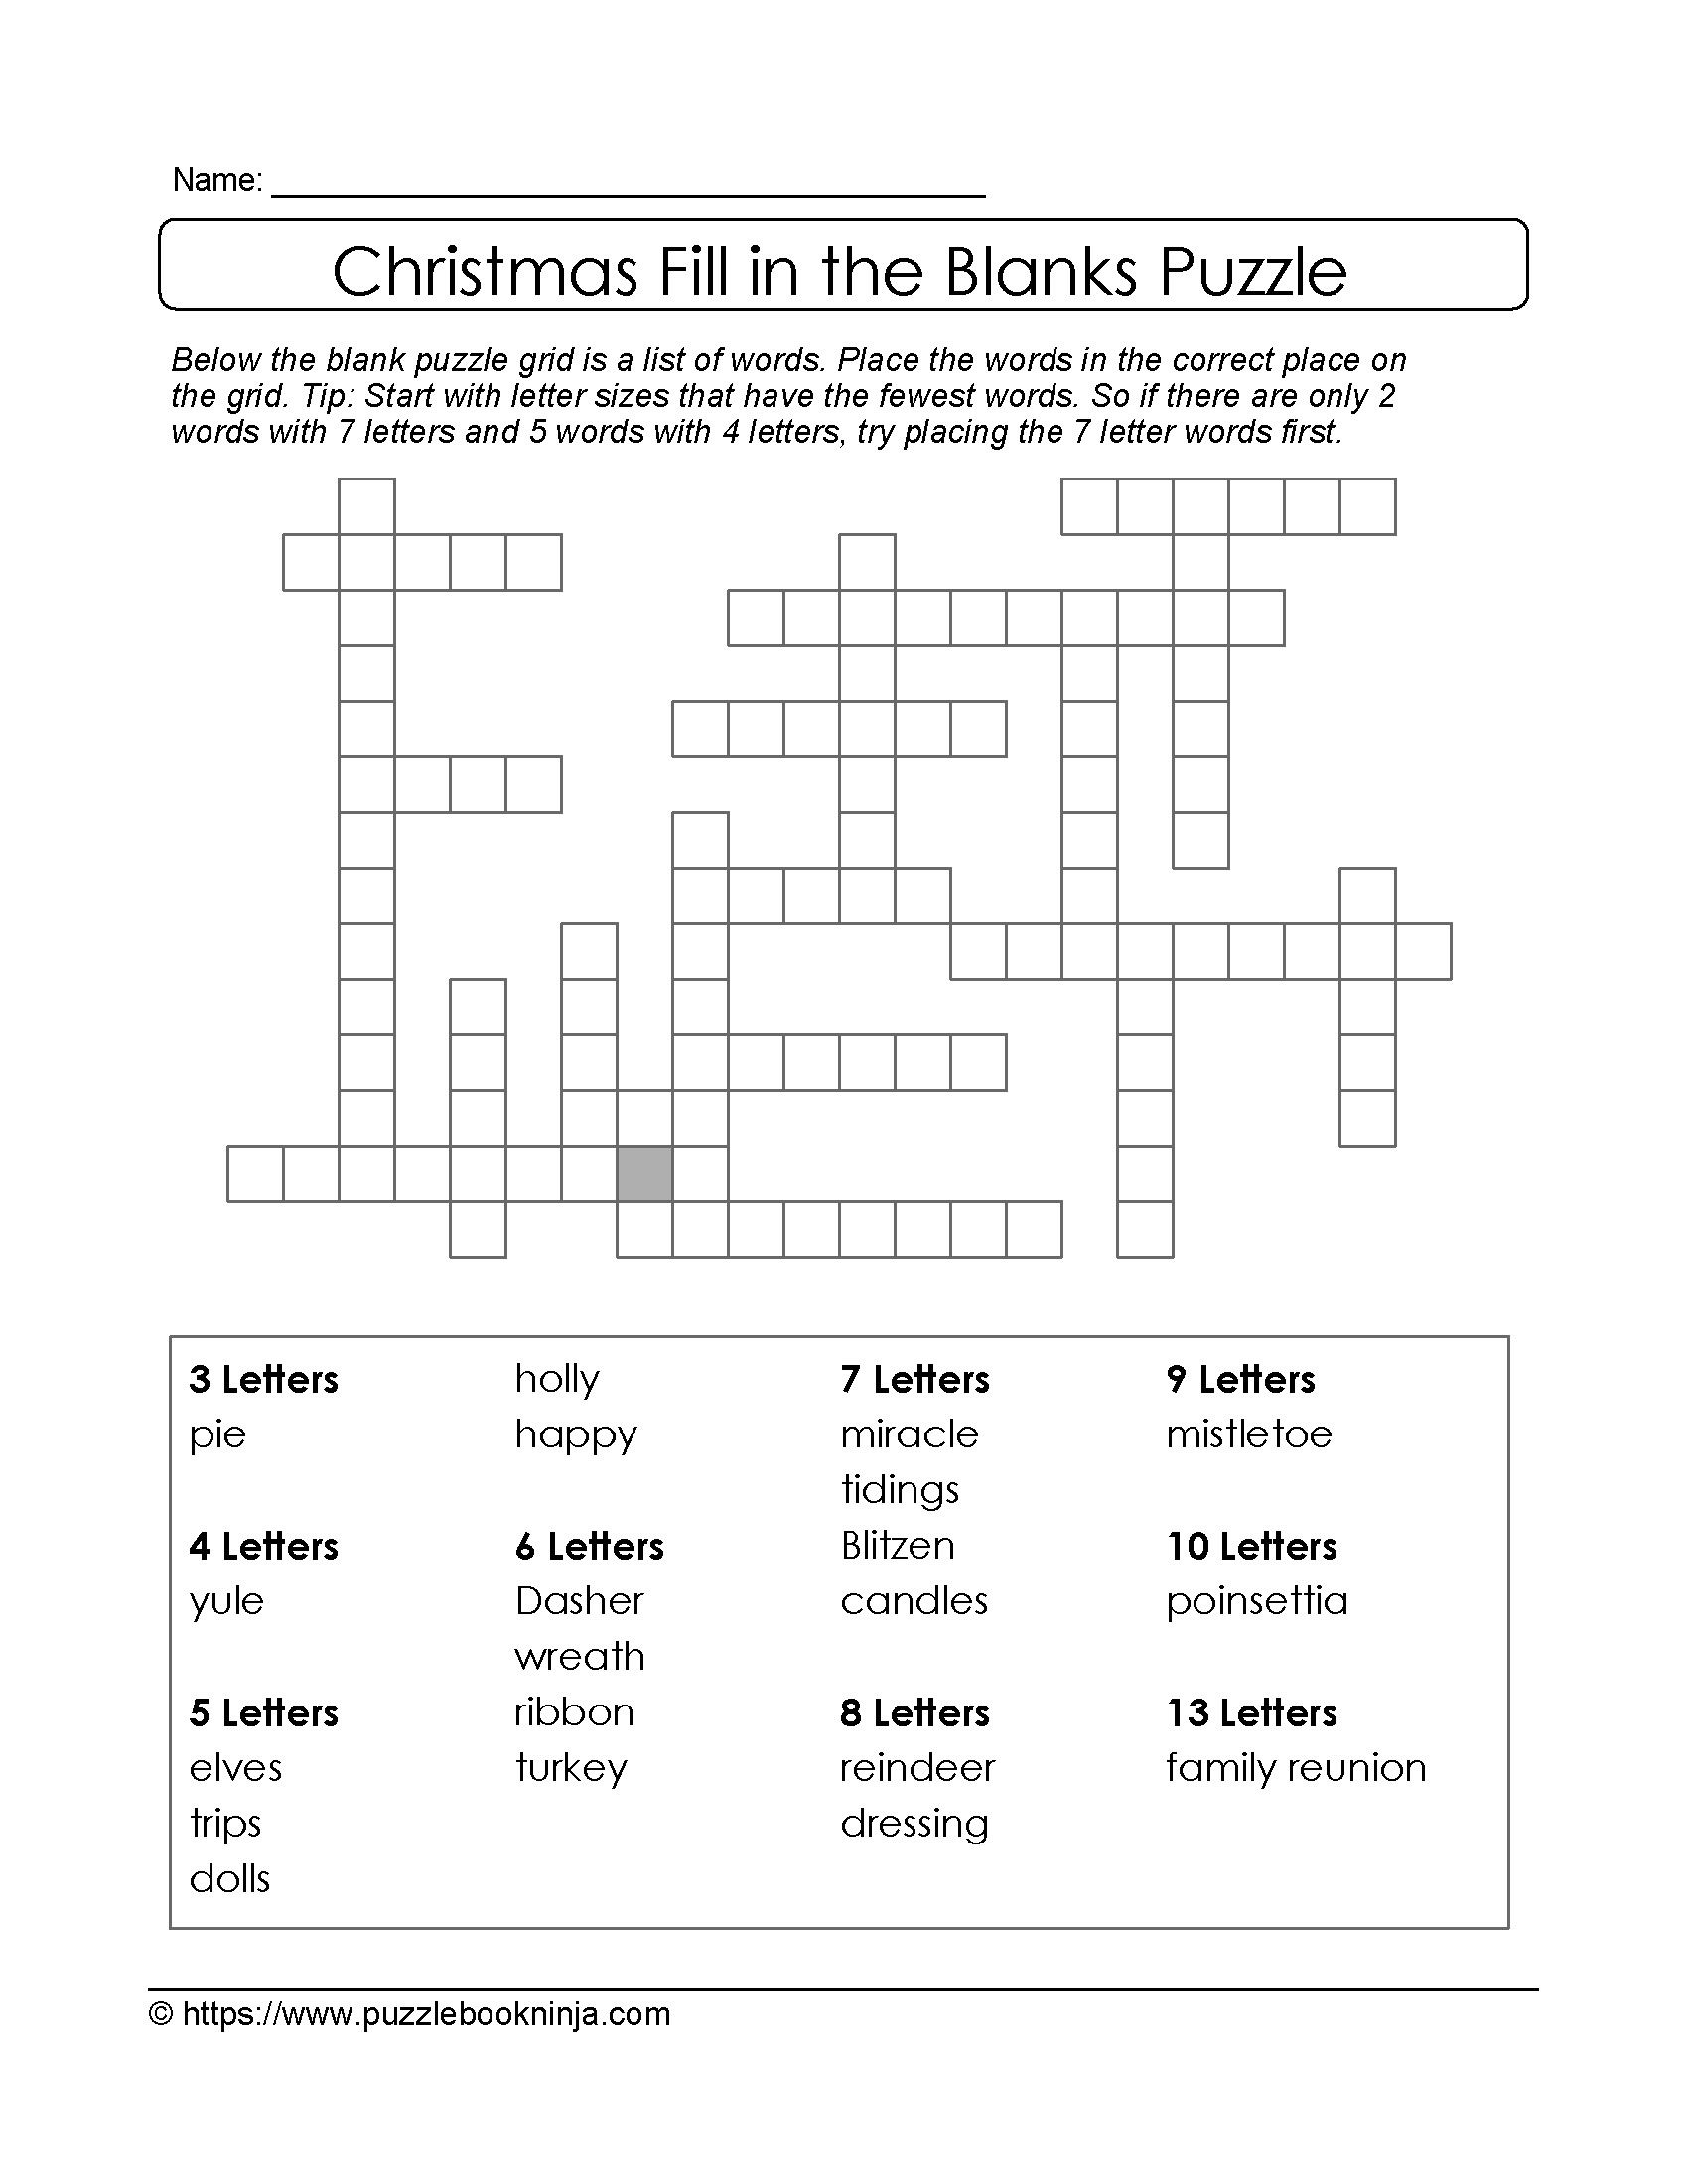 Puzzles To Print Downloadable Christmas Puzzle Mom Dads House